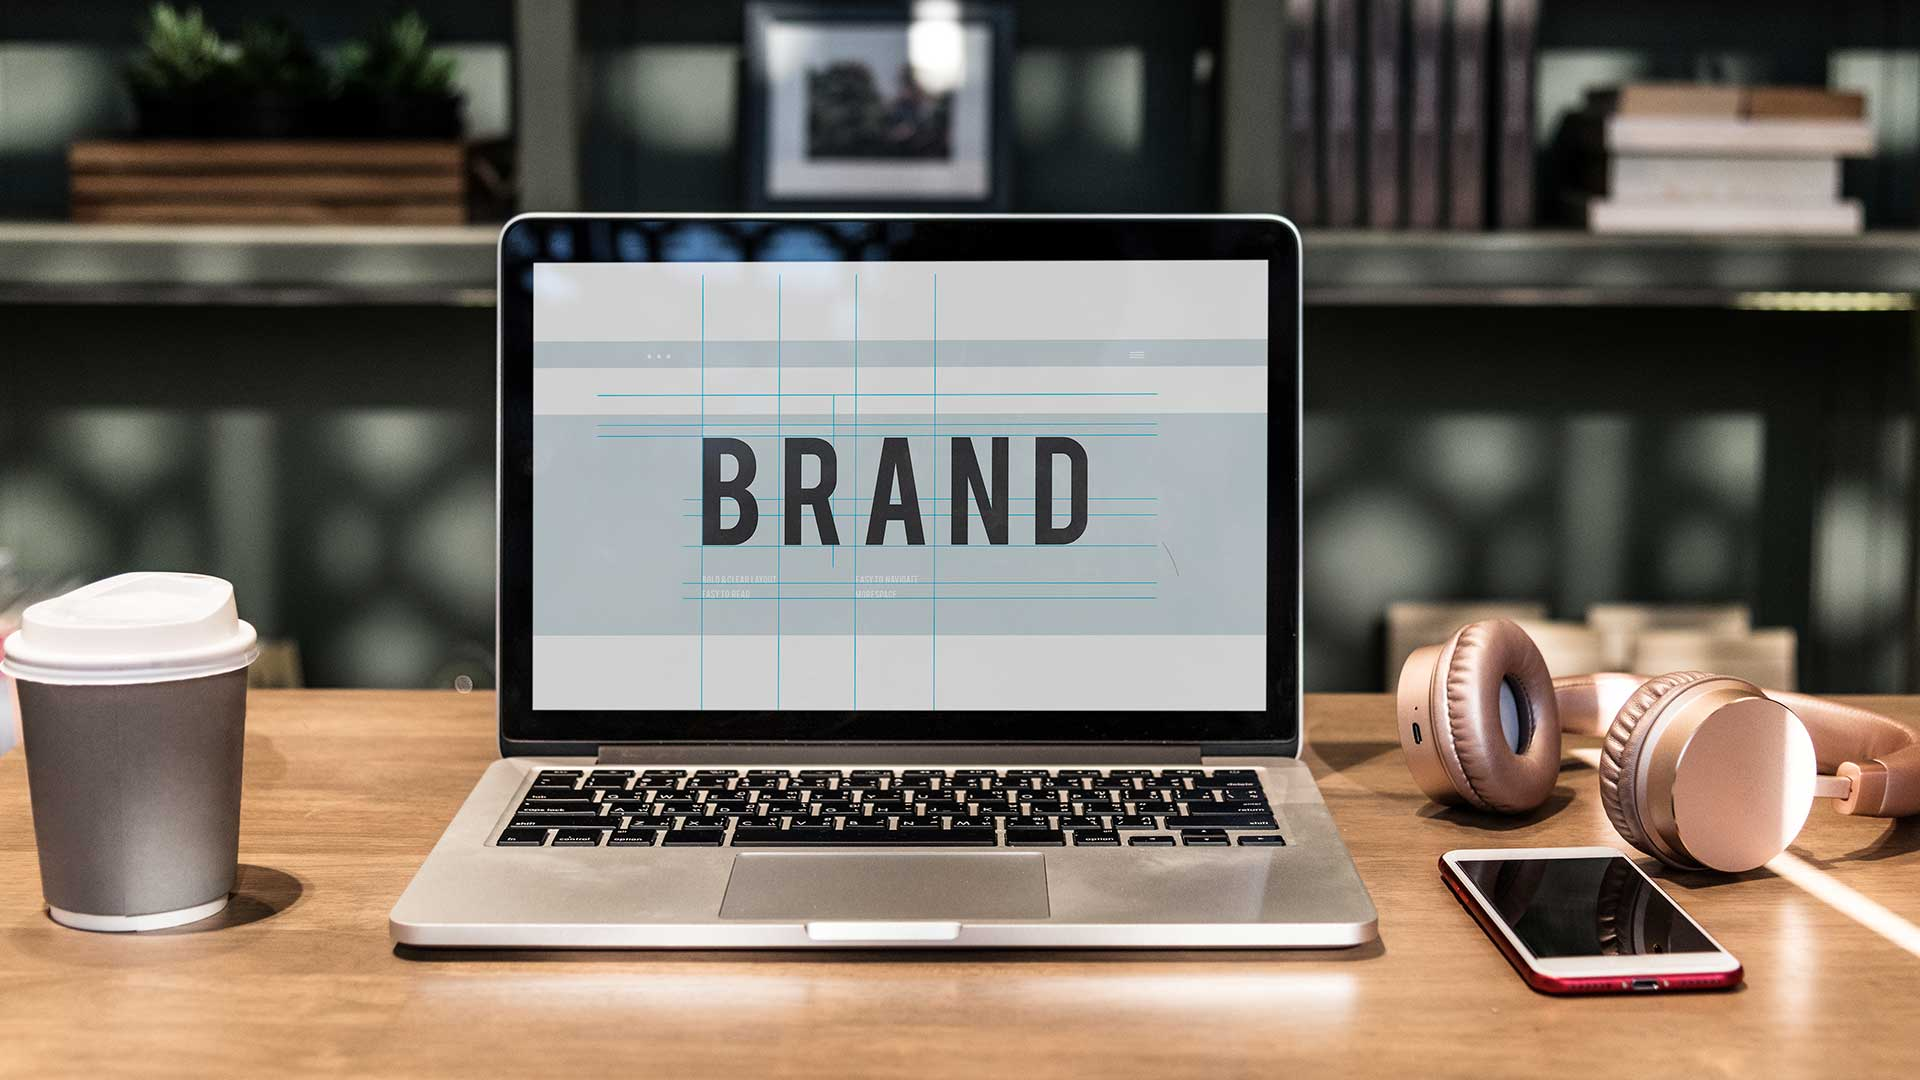 image relates to Shaping Your Brand Online